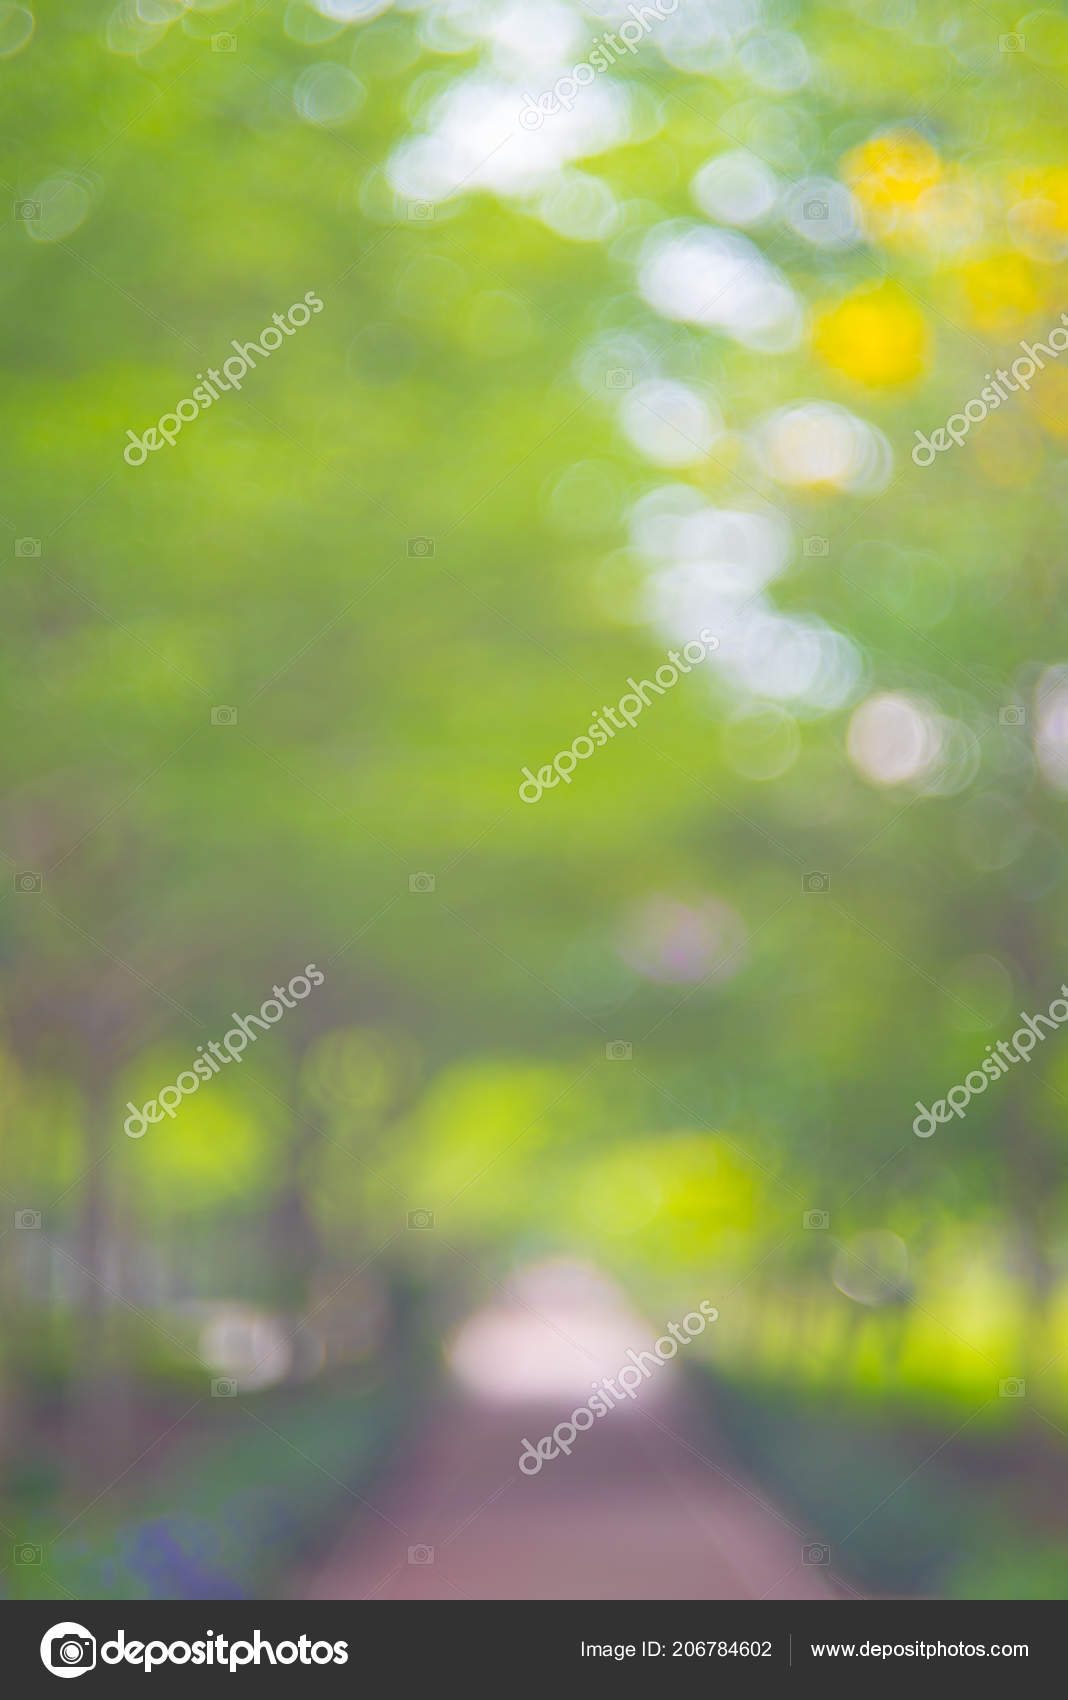 Natural Blur Full Hd Photoshoot Background Nature Background Images